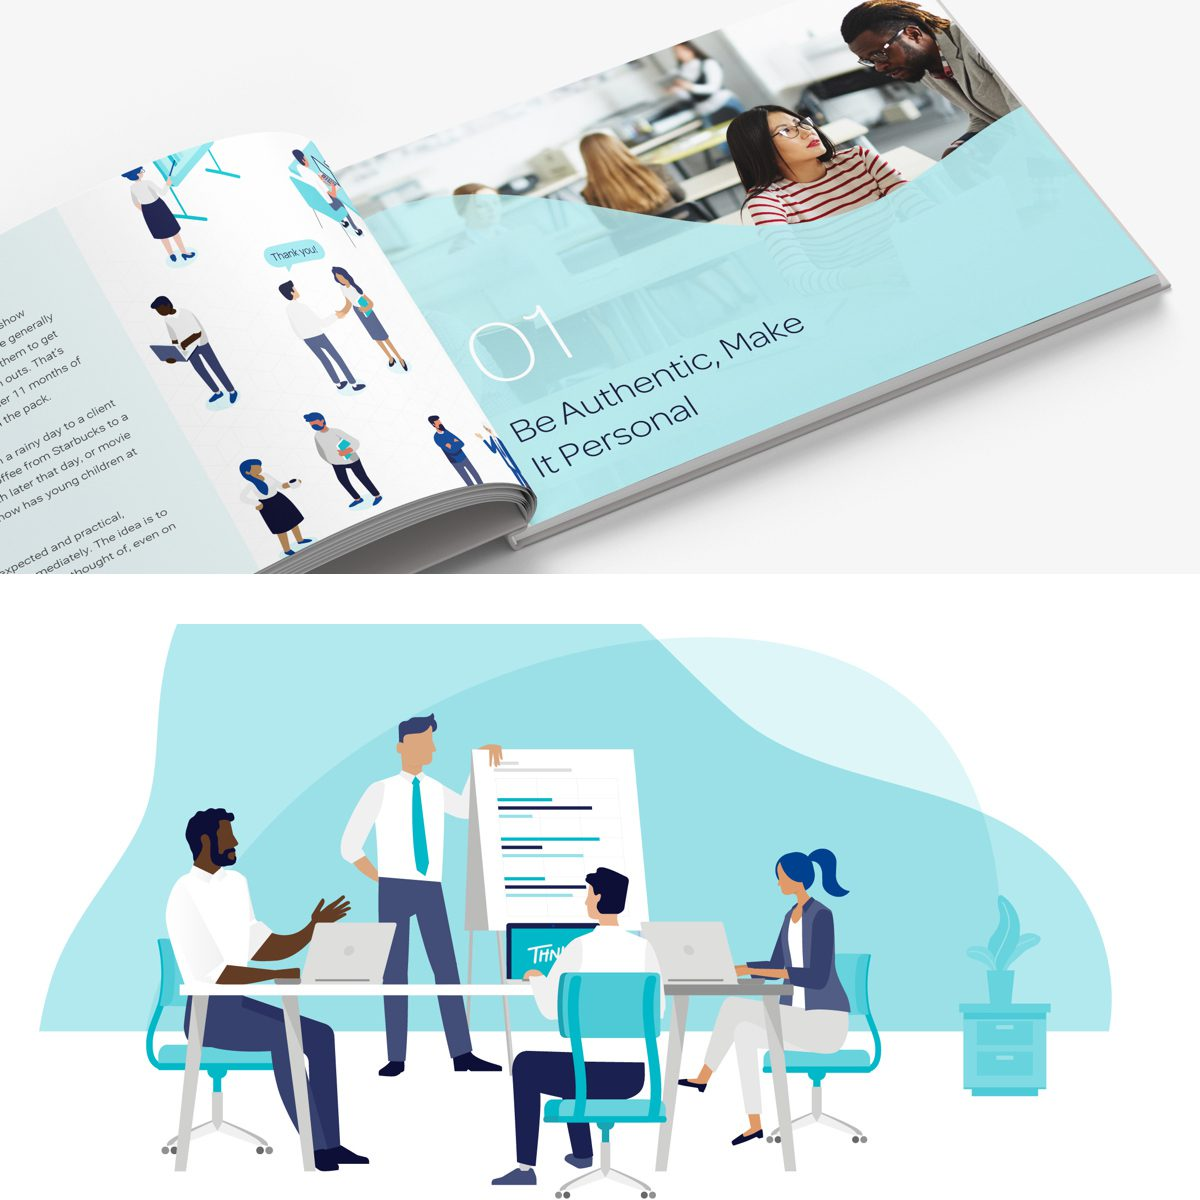 Thnks branded book design with flat illustration graphics